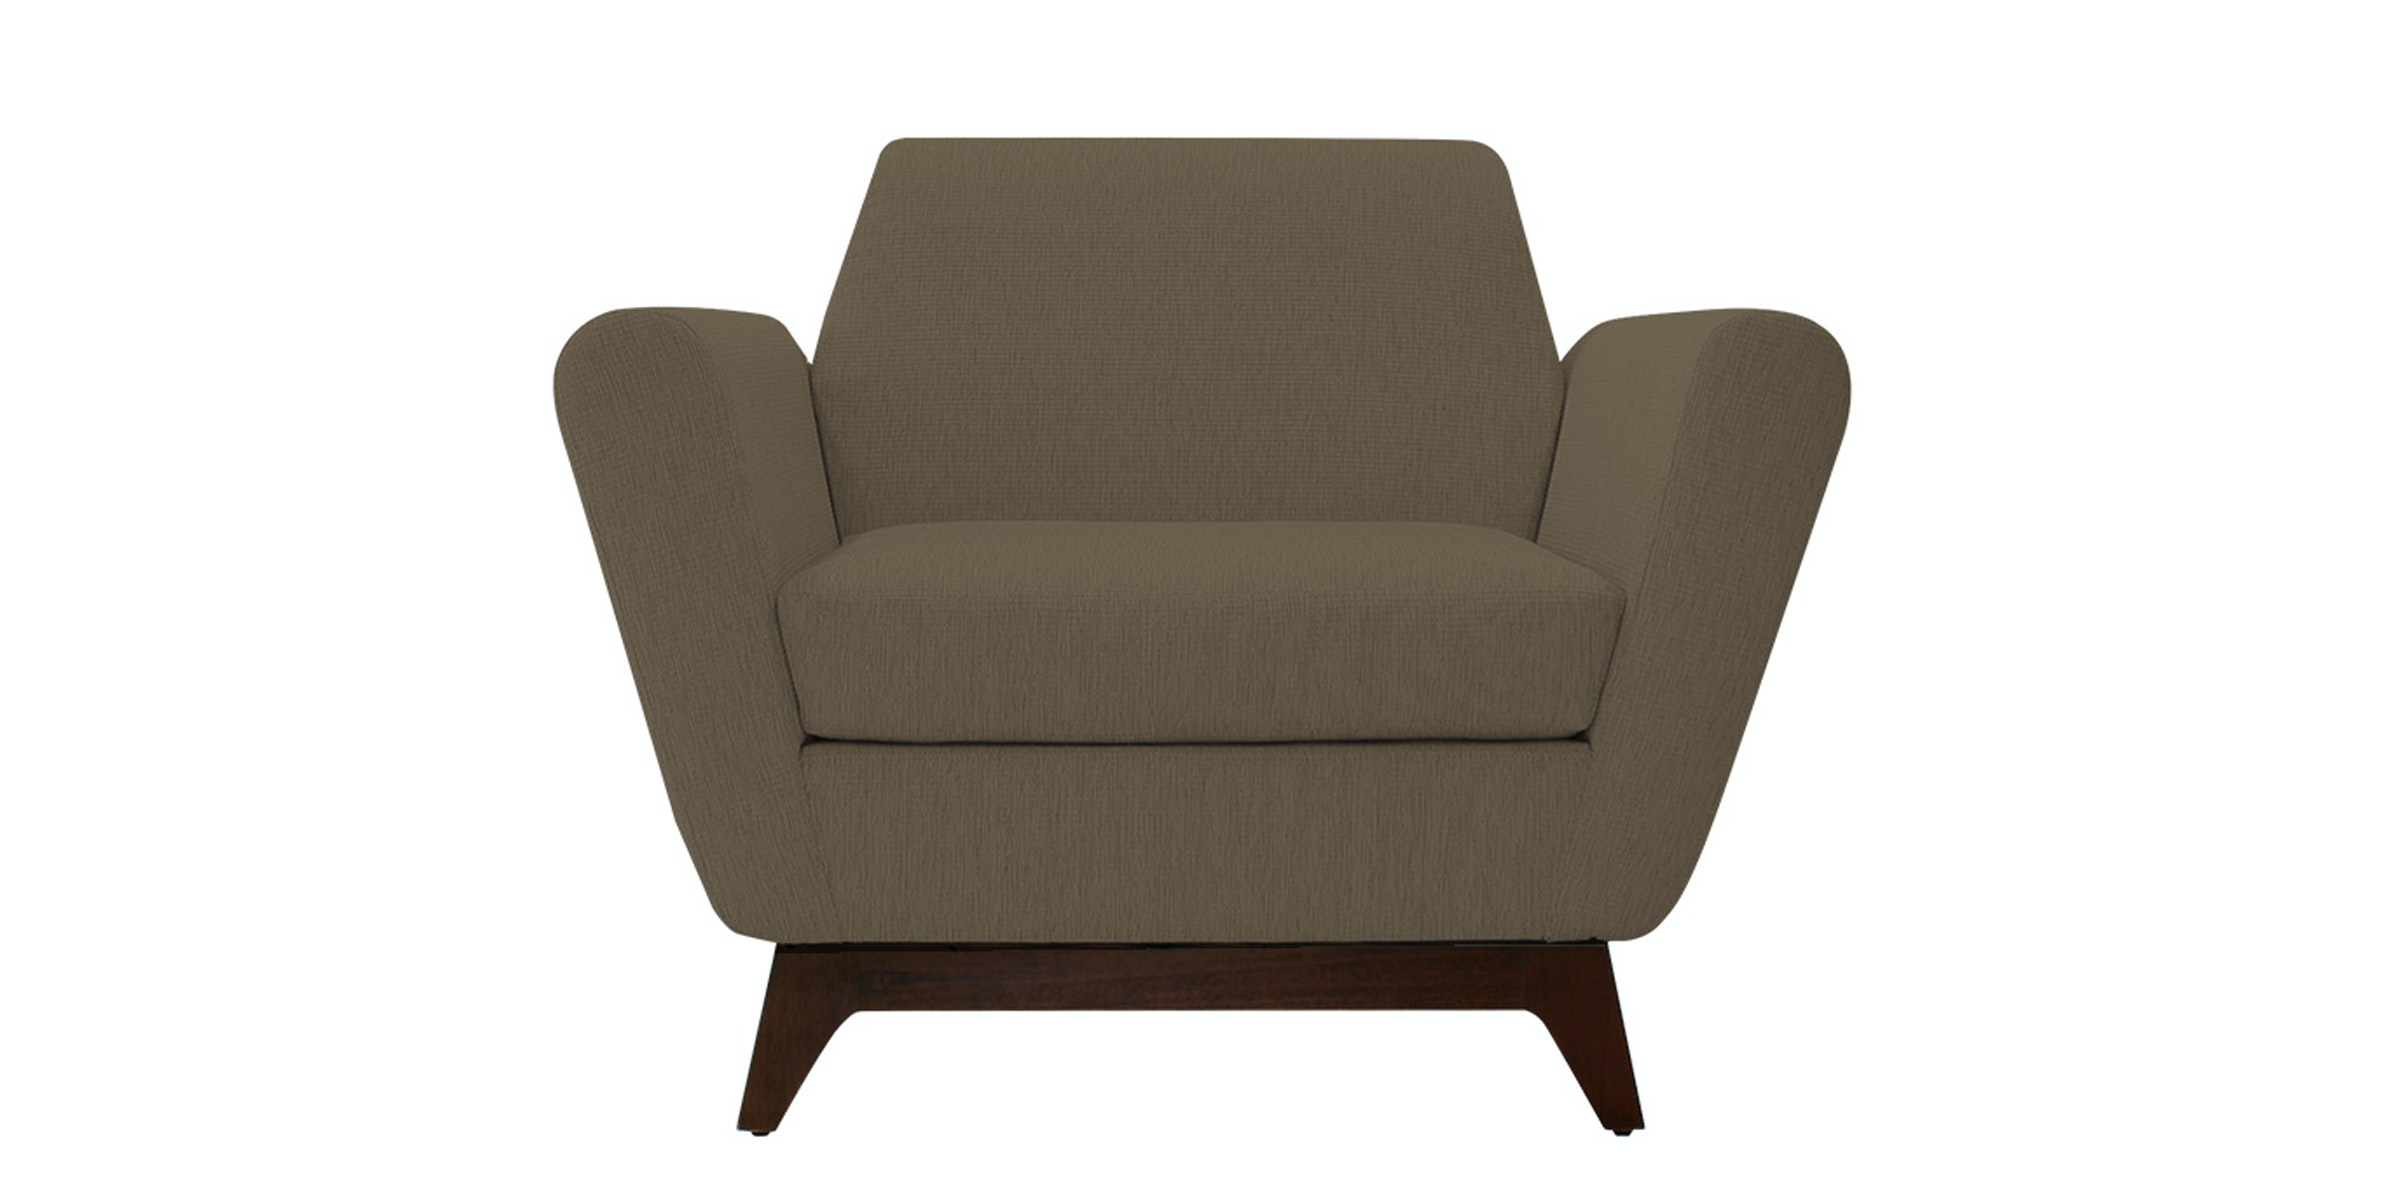 Nestudio Frankie Forte One Seater Sofa Tuscan Tan